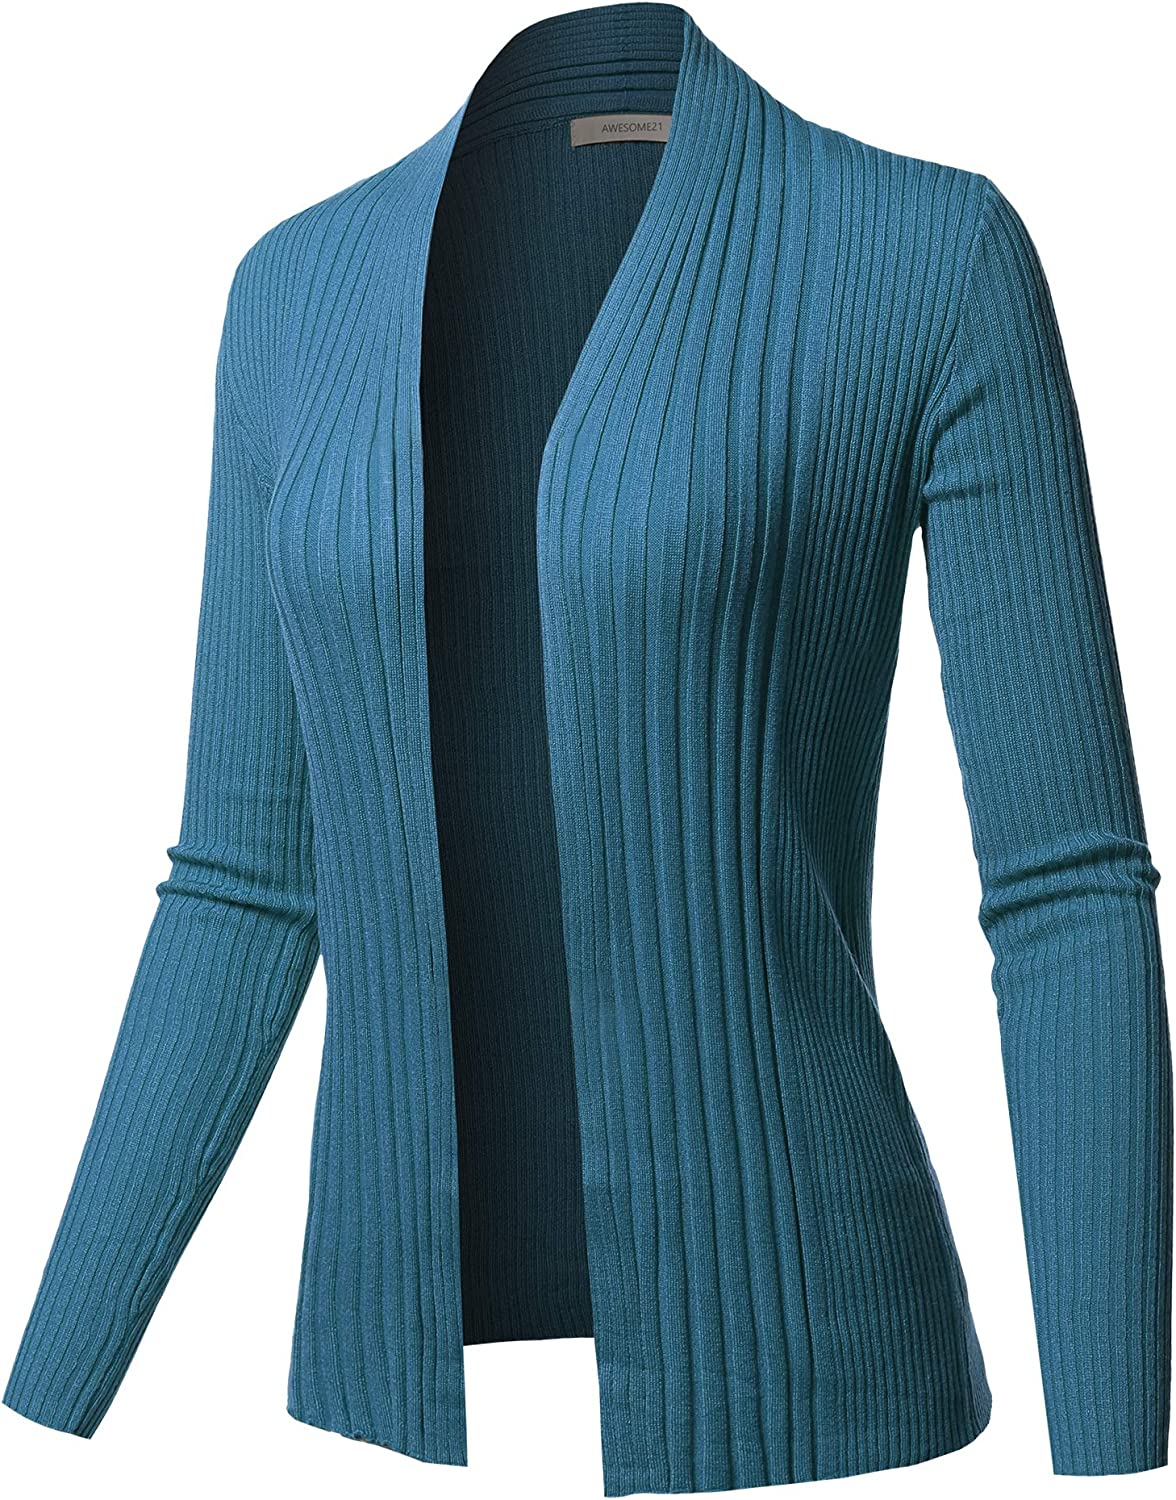 Women's Outerwear Basic Solid Long Sleeve Ribbed Open Front Cardigan